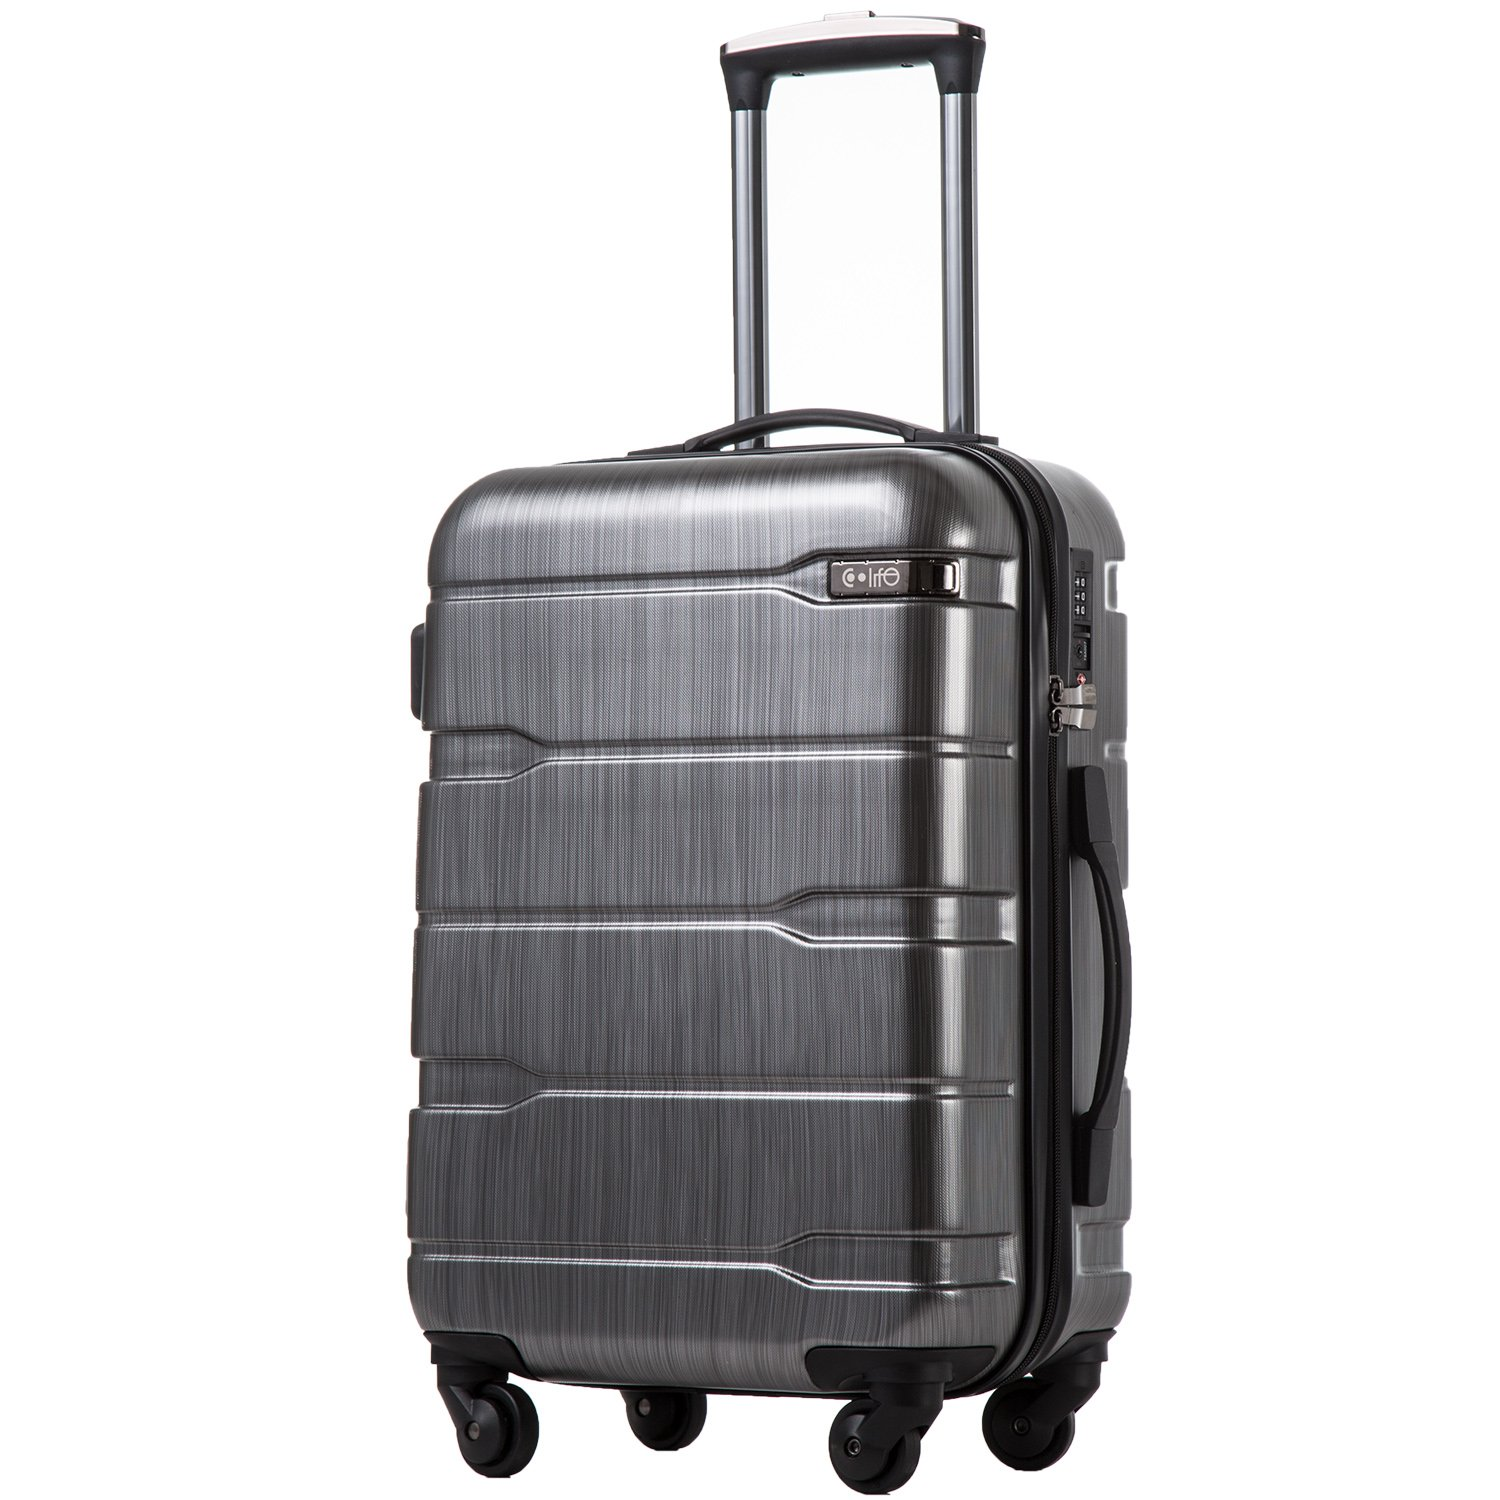 COOLIFE Luggage Expandable(only 28'') Suitcase PC+ABS Spinner Built-in TSA Lock 20in 24in 28in Carry on (Charcoal, S(20in_Carry on))